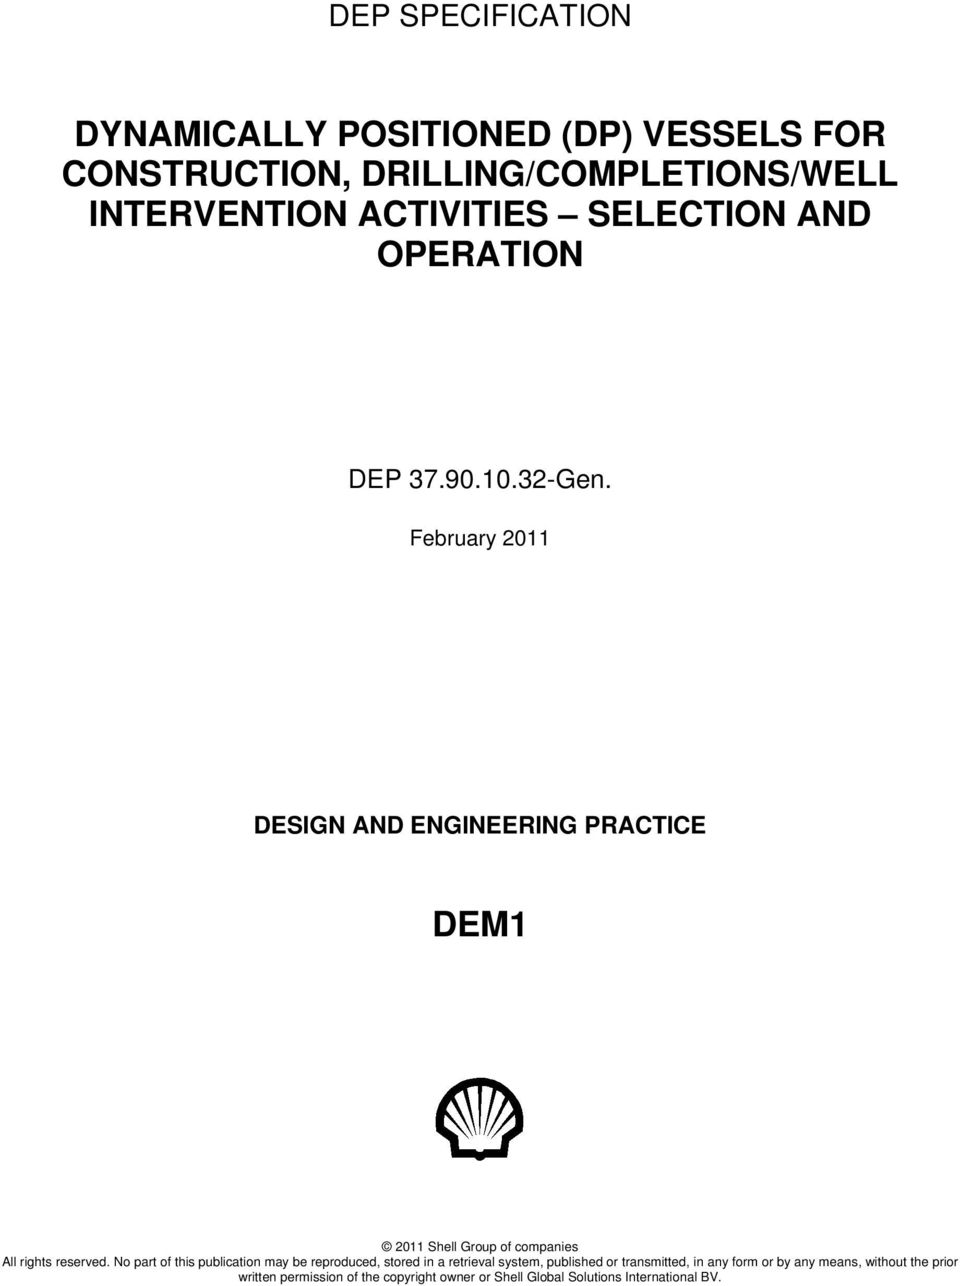 Dynamically Positioned Dp Vessels For Construction Drilling Completions Well Intervention Activities Selection And Operation Pdf Free Download